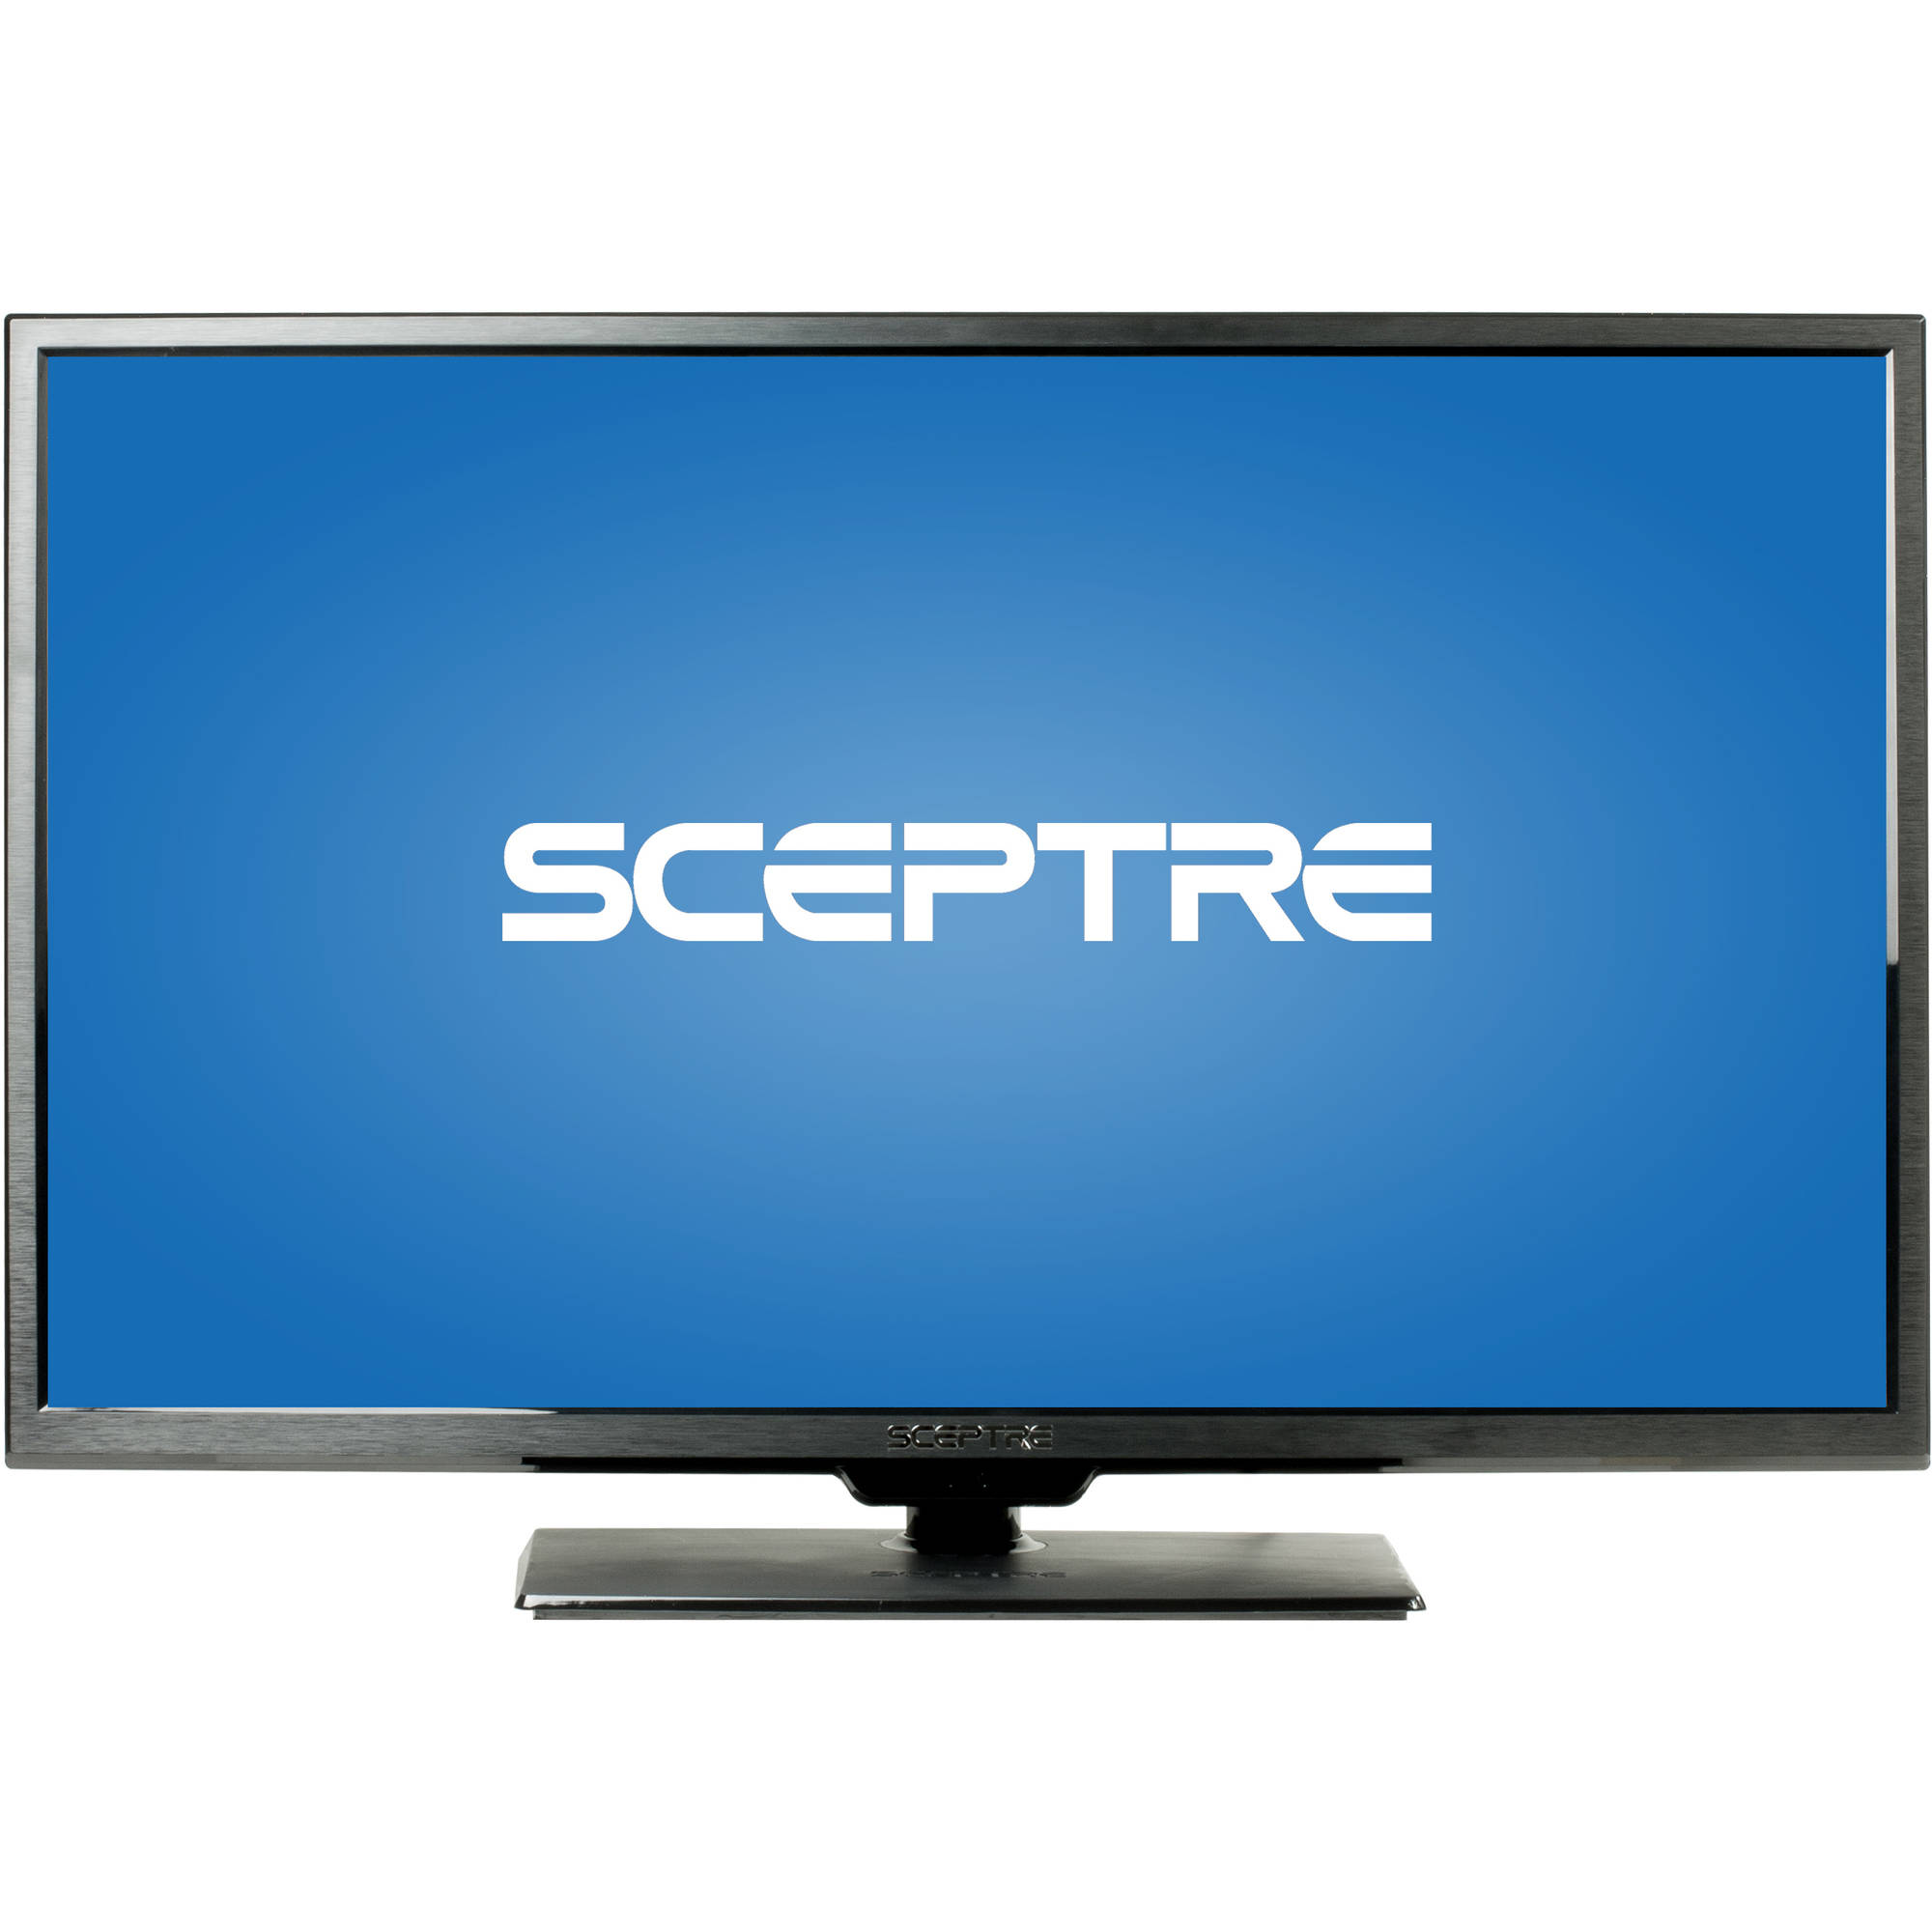 "SCEPTRE X322BV-M 32"" LED Class 720P HDTV with ultra slim metal brush bezel, 60Hz"